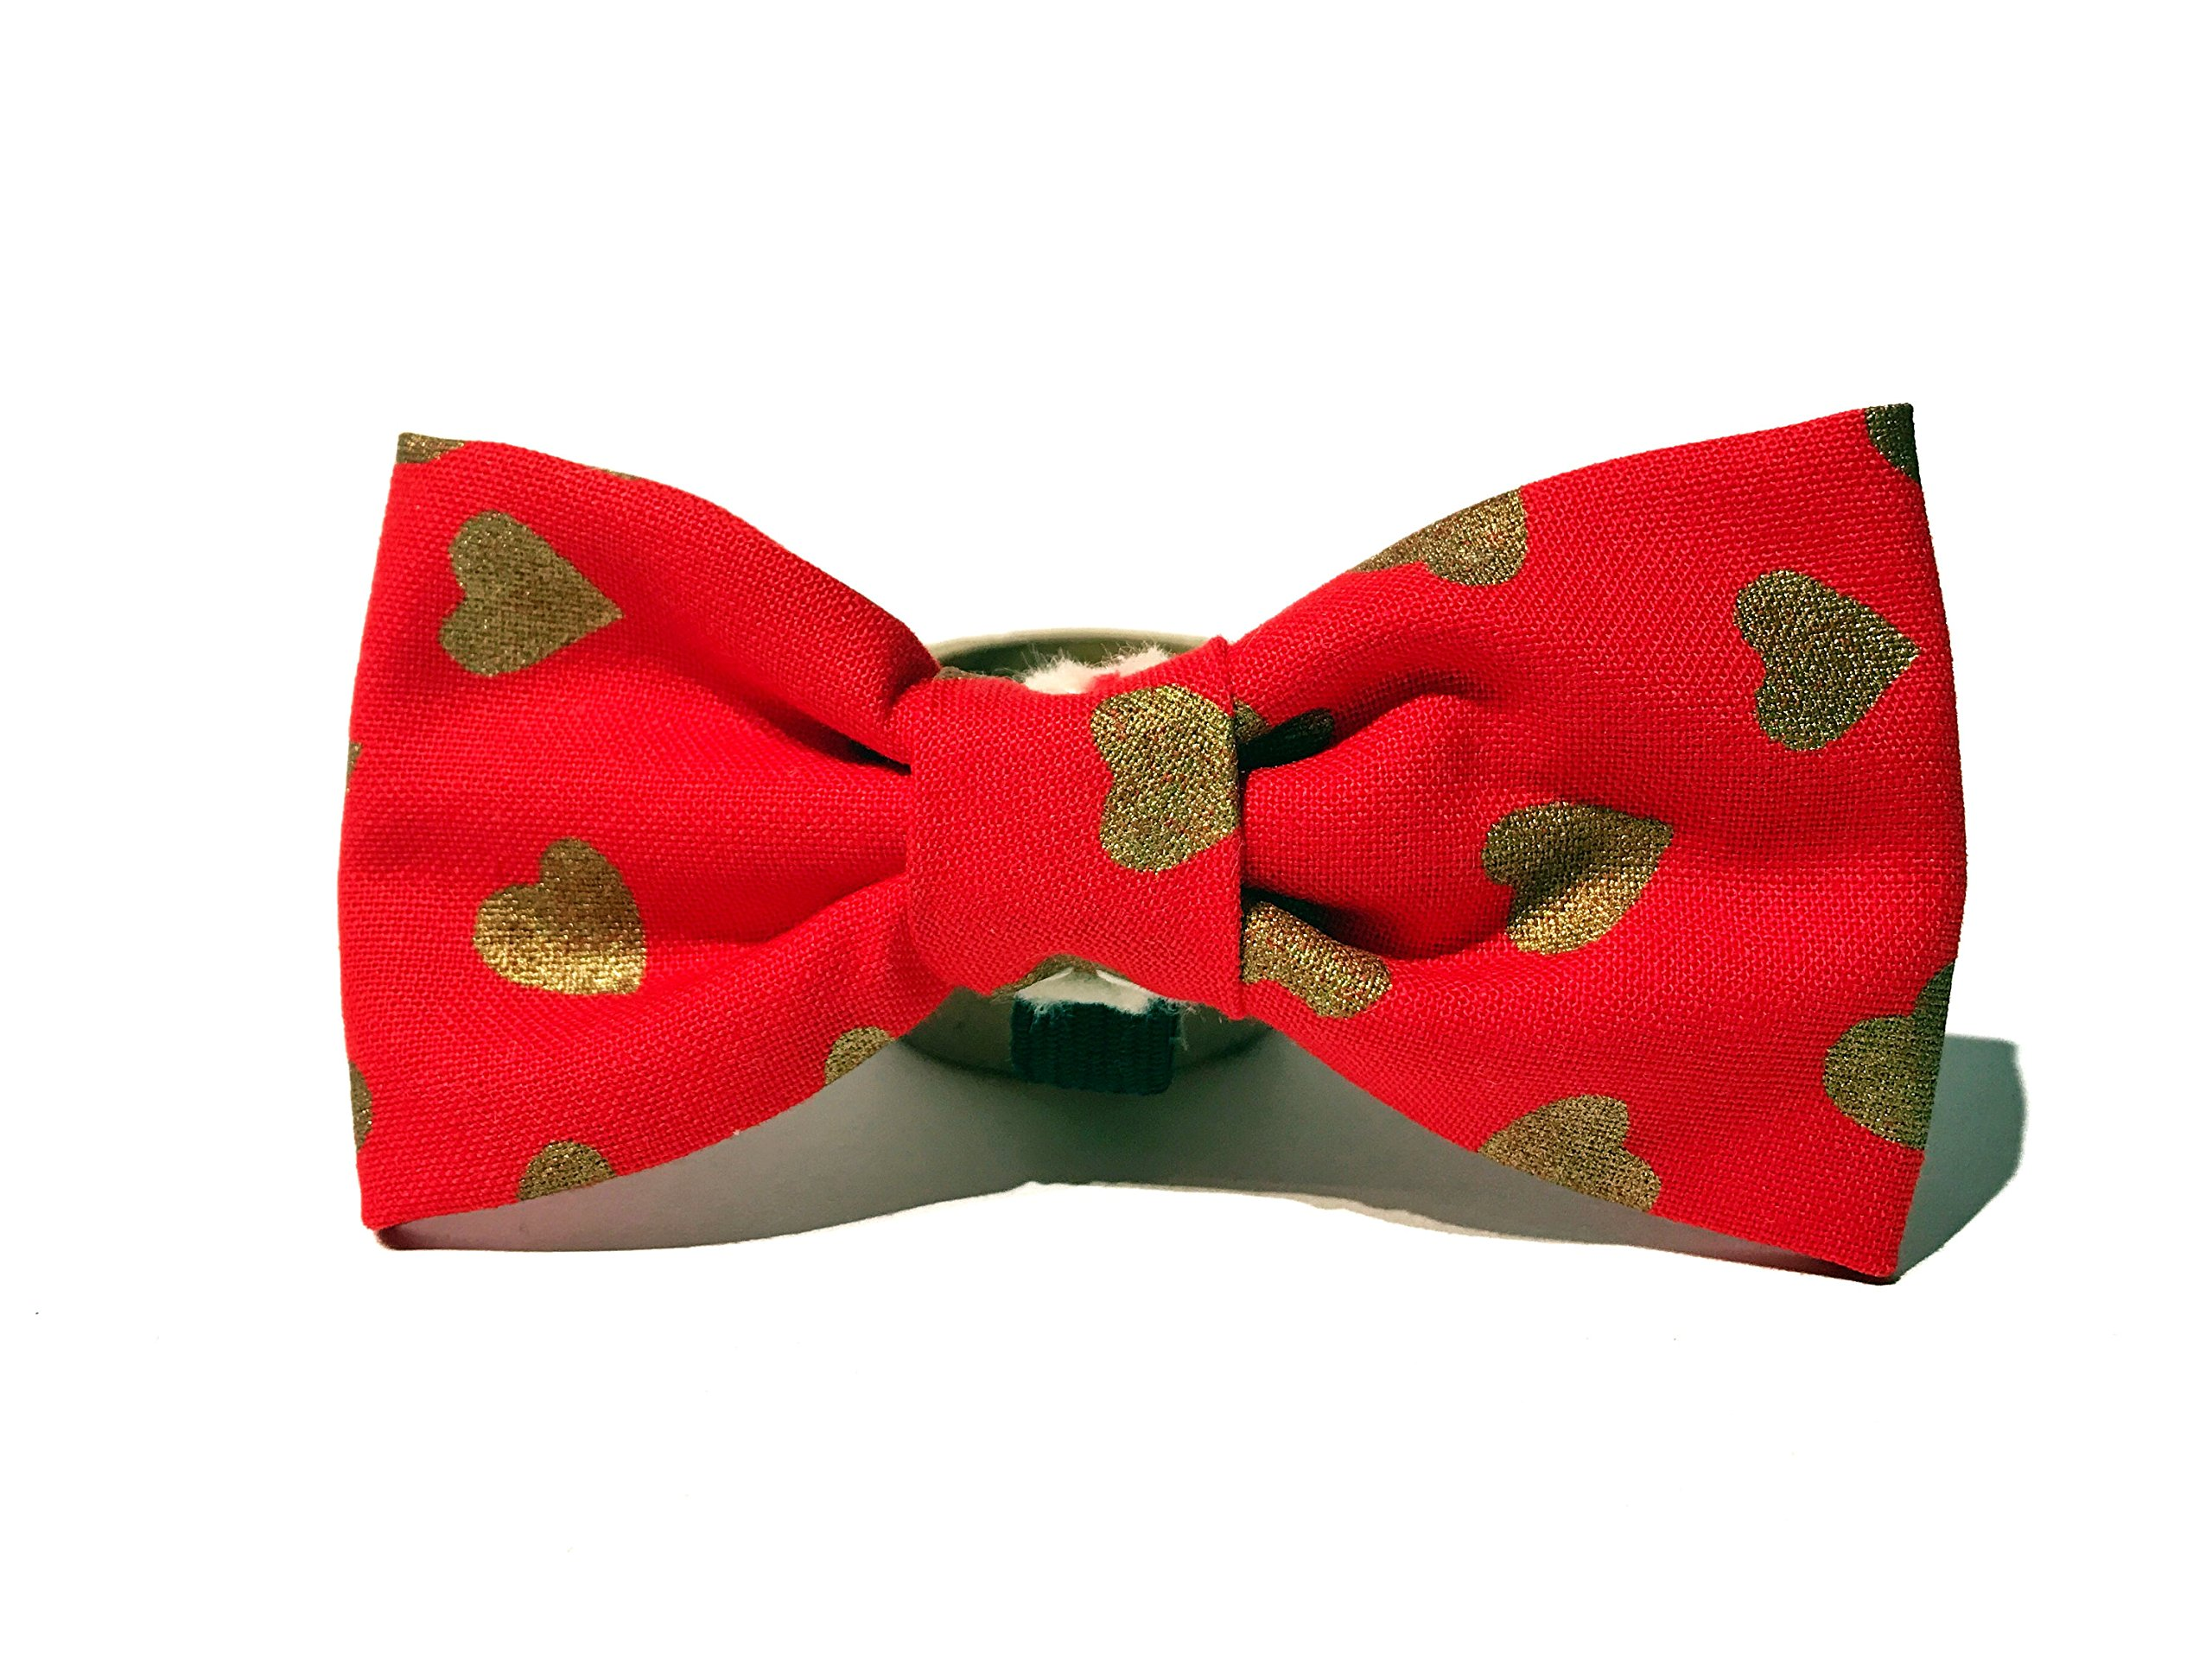 Very Vintage Design Dog Cat Collar Bow Tie Red Gold Heart Hand Crafted Collection Organic Cotton Personalized Adjustable Pet Bowtie